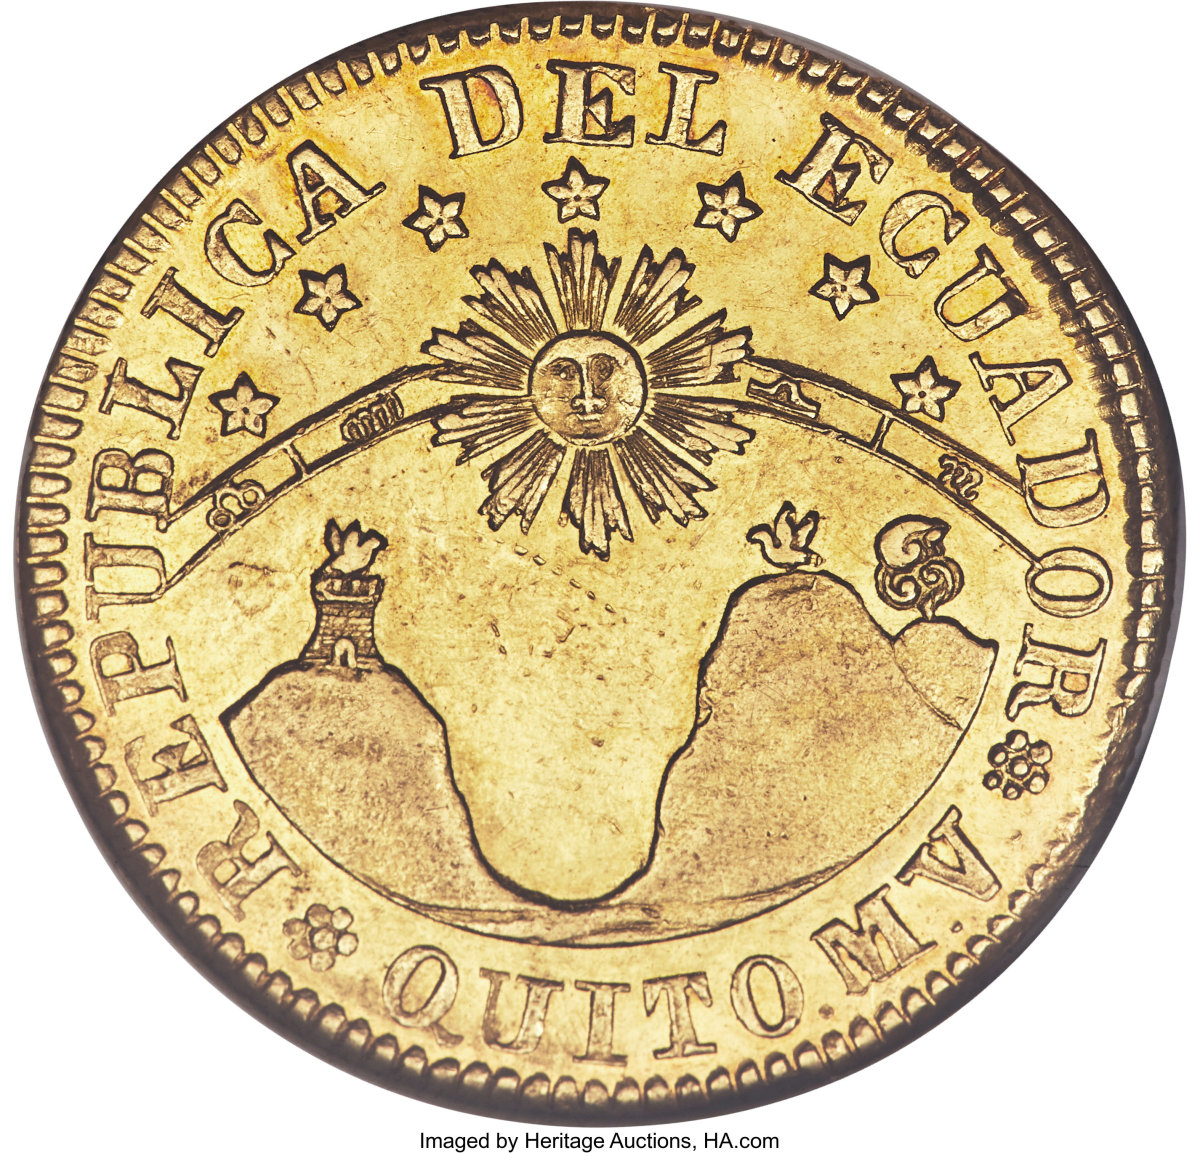 """Desirable Ecuador Republic gold 8 escudos of 1843 MV-S struck in Quito (KM-23.2;Fr-3). The AU55 NGC graded coin comes described as having """"lustrous surfaces, and a harvest-gold planchet with old-time peripheral toning."""" (Image courtesy Heritage Auctions)"""